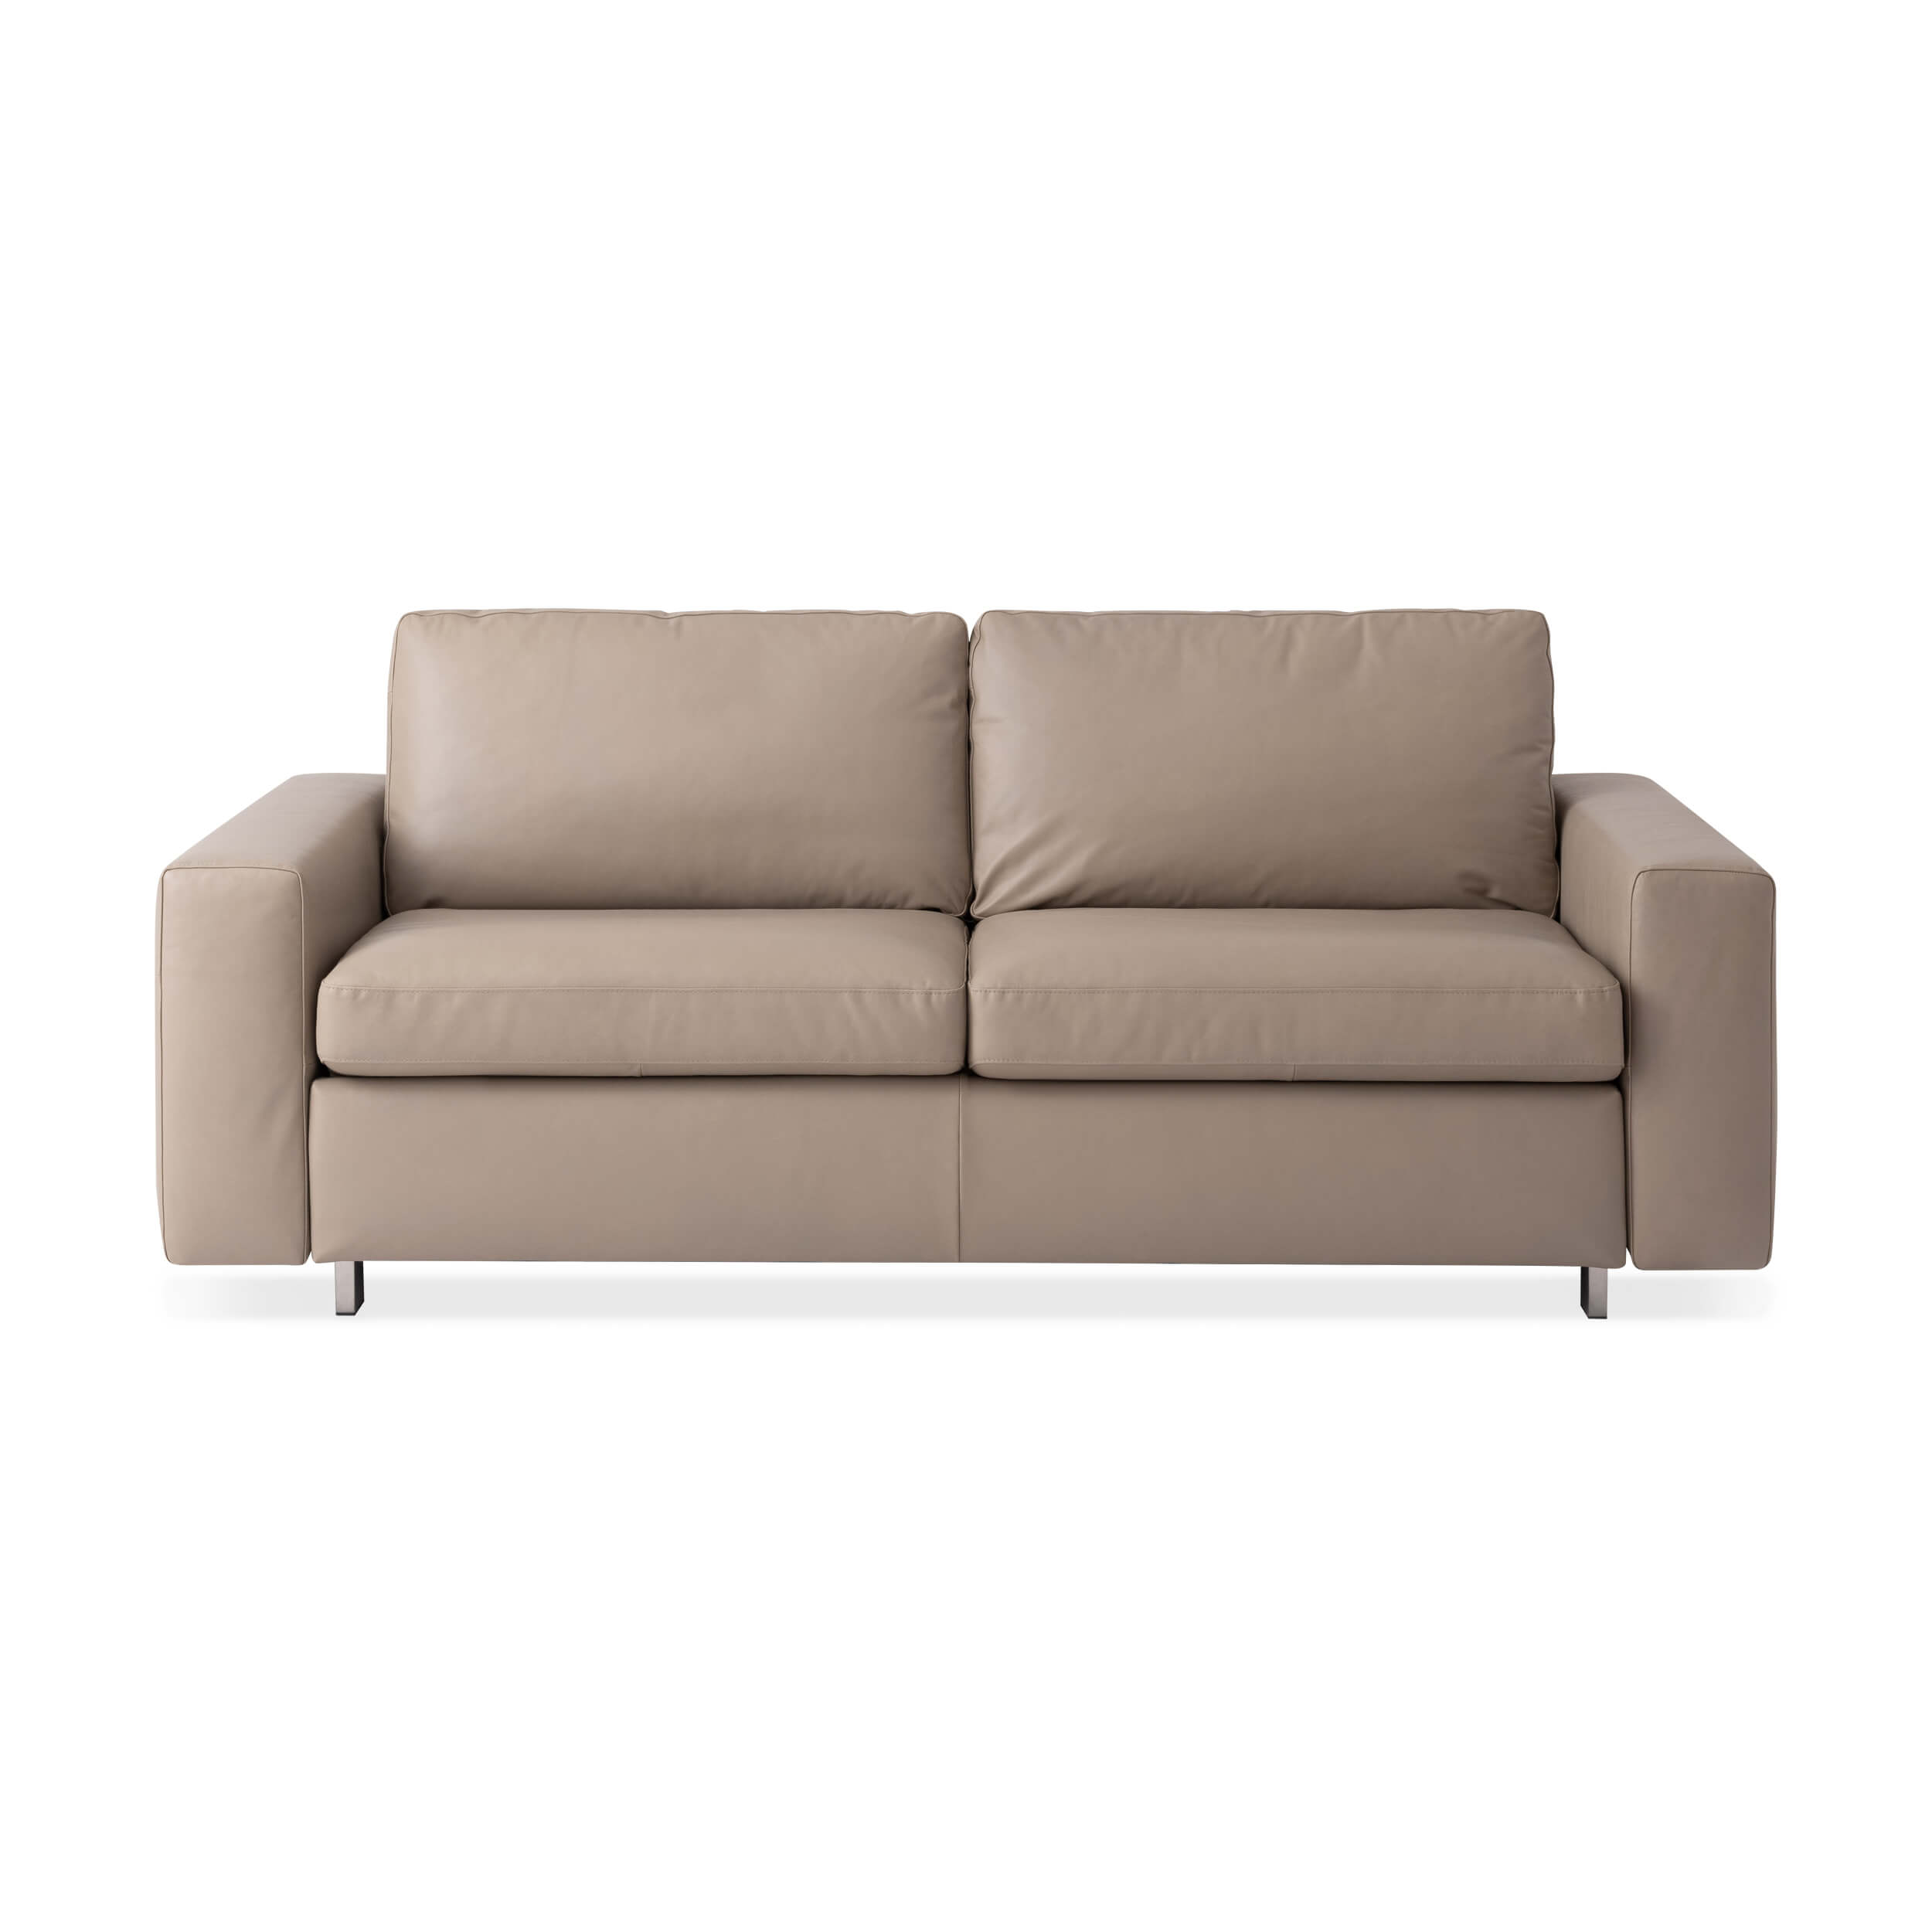 Reva Sleeper Sofa Leather